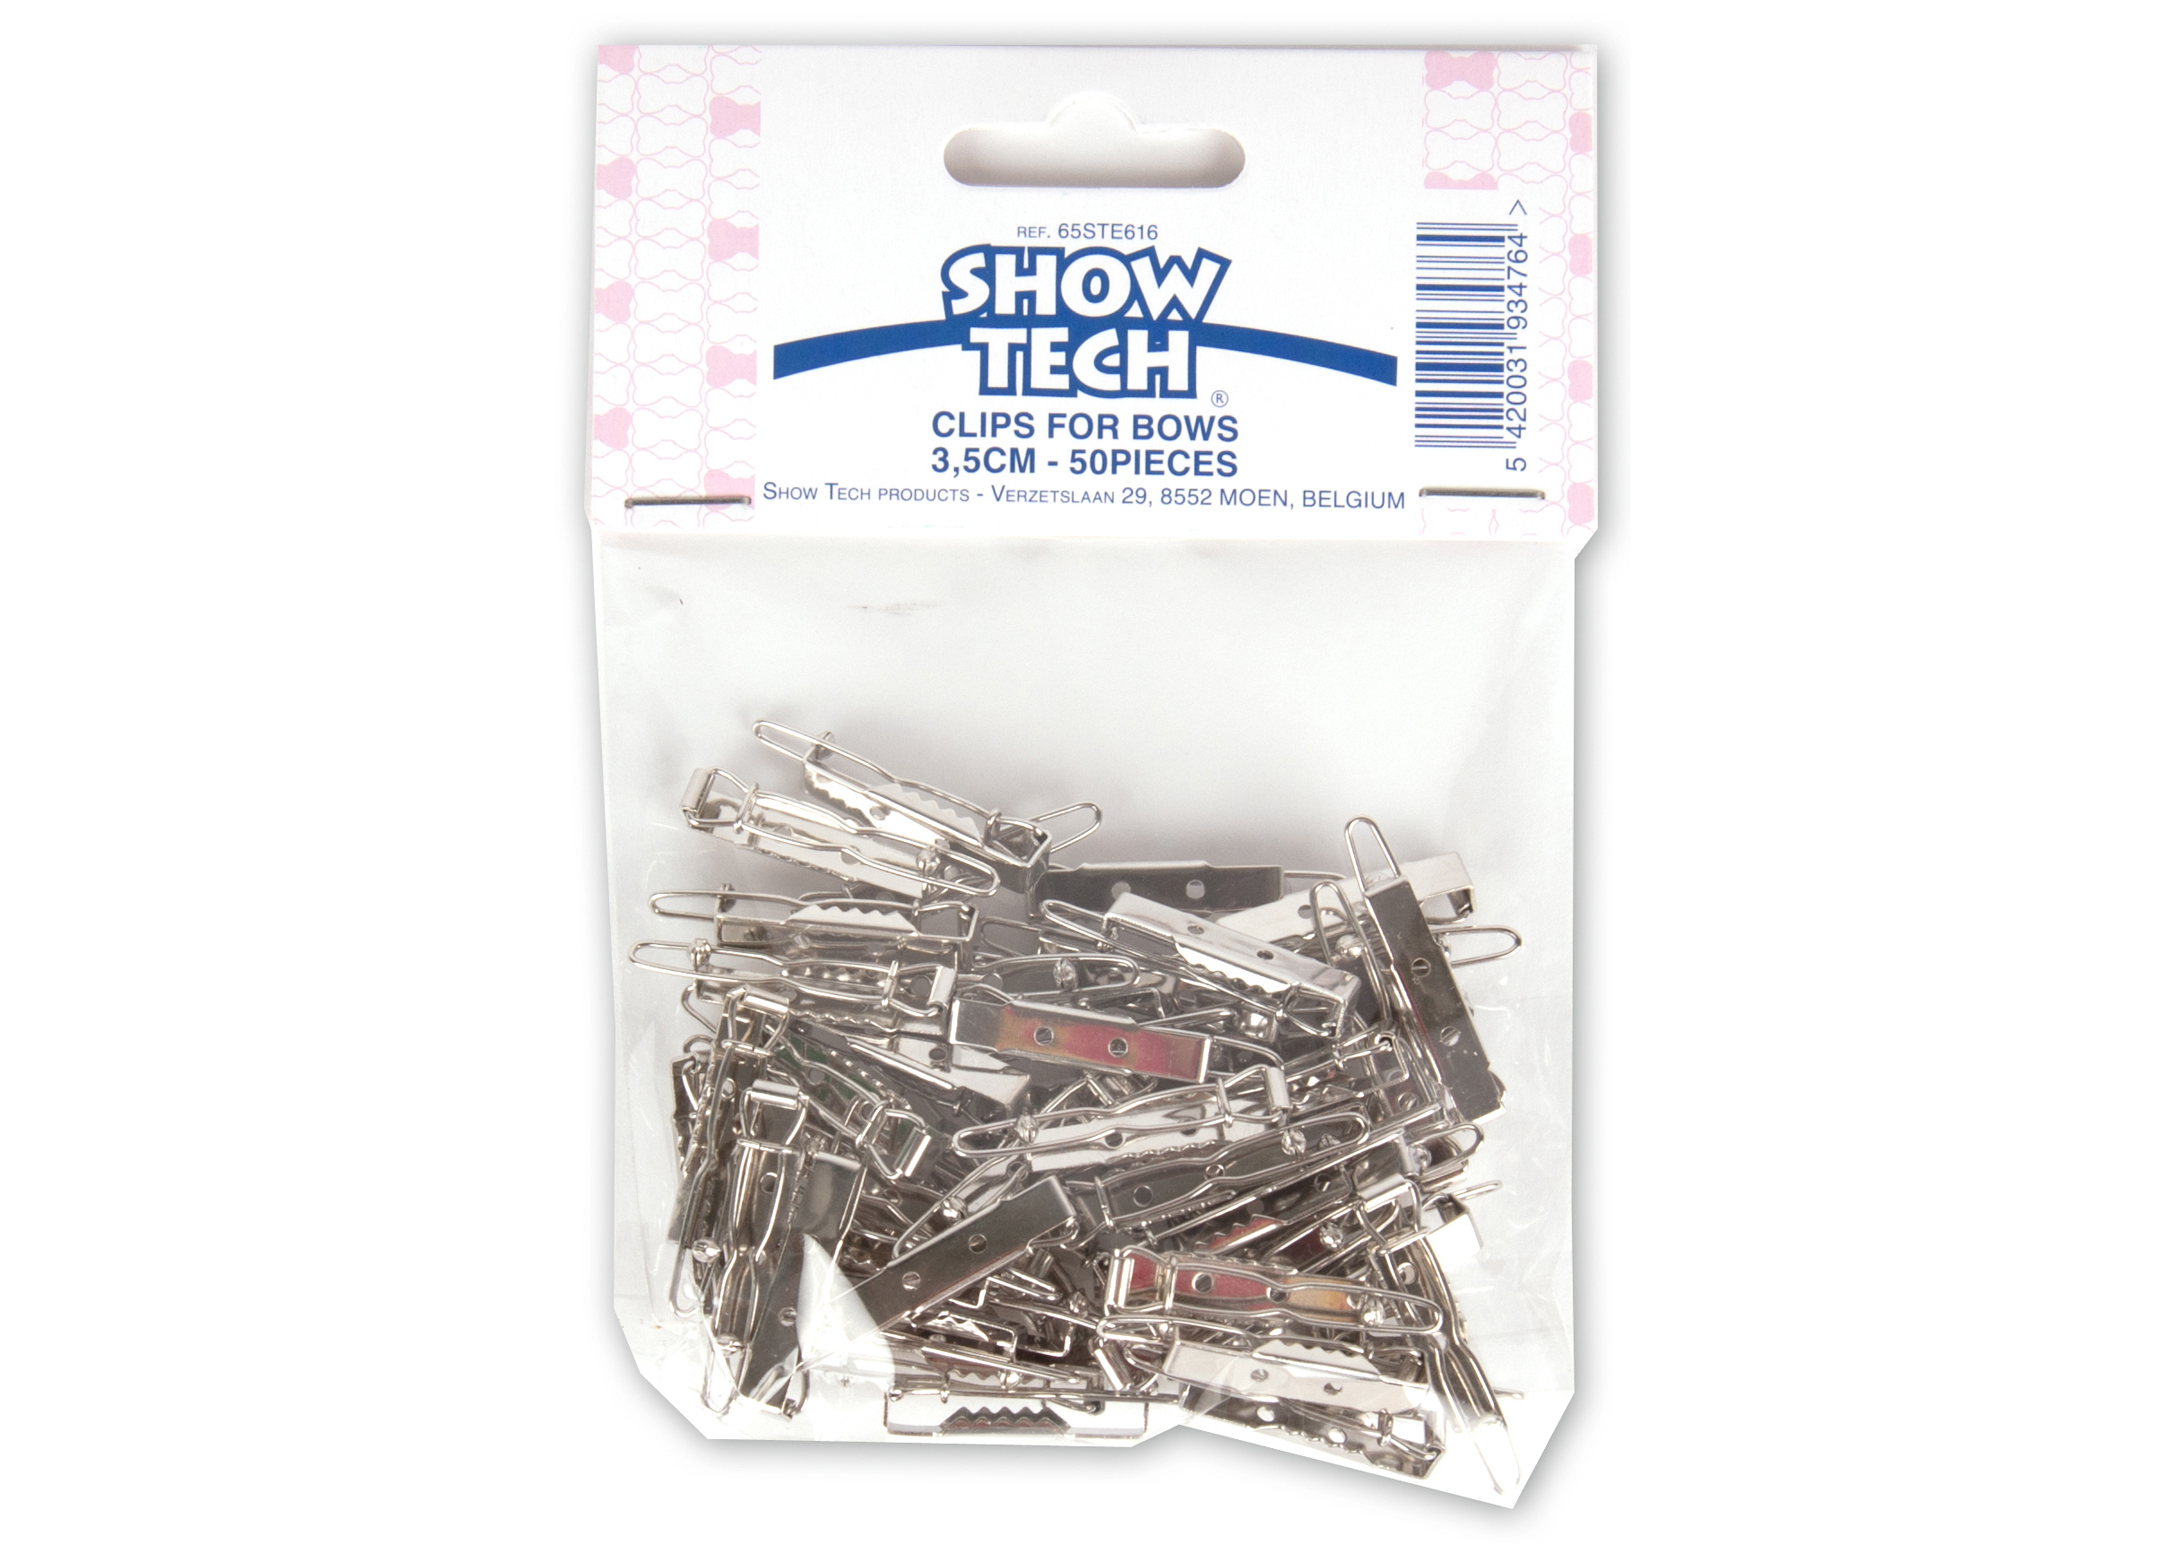 Show Tech Clips for Bows 3,5cm 50 pcs